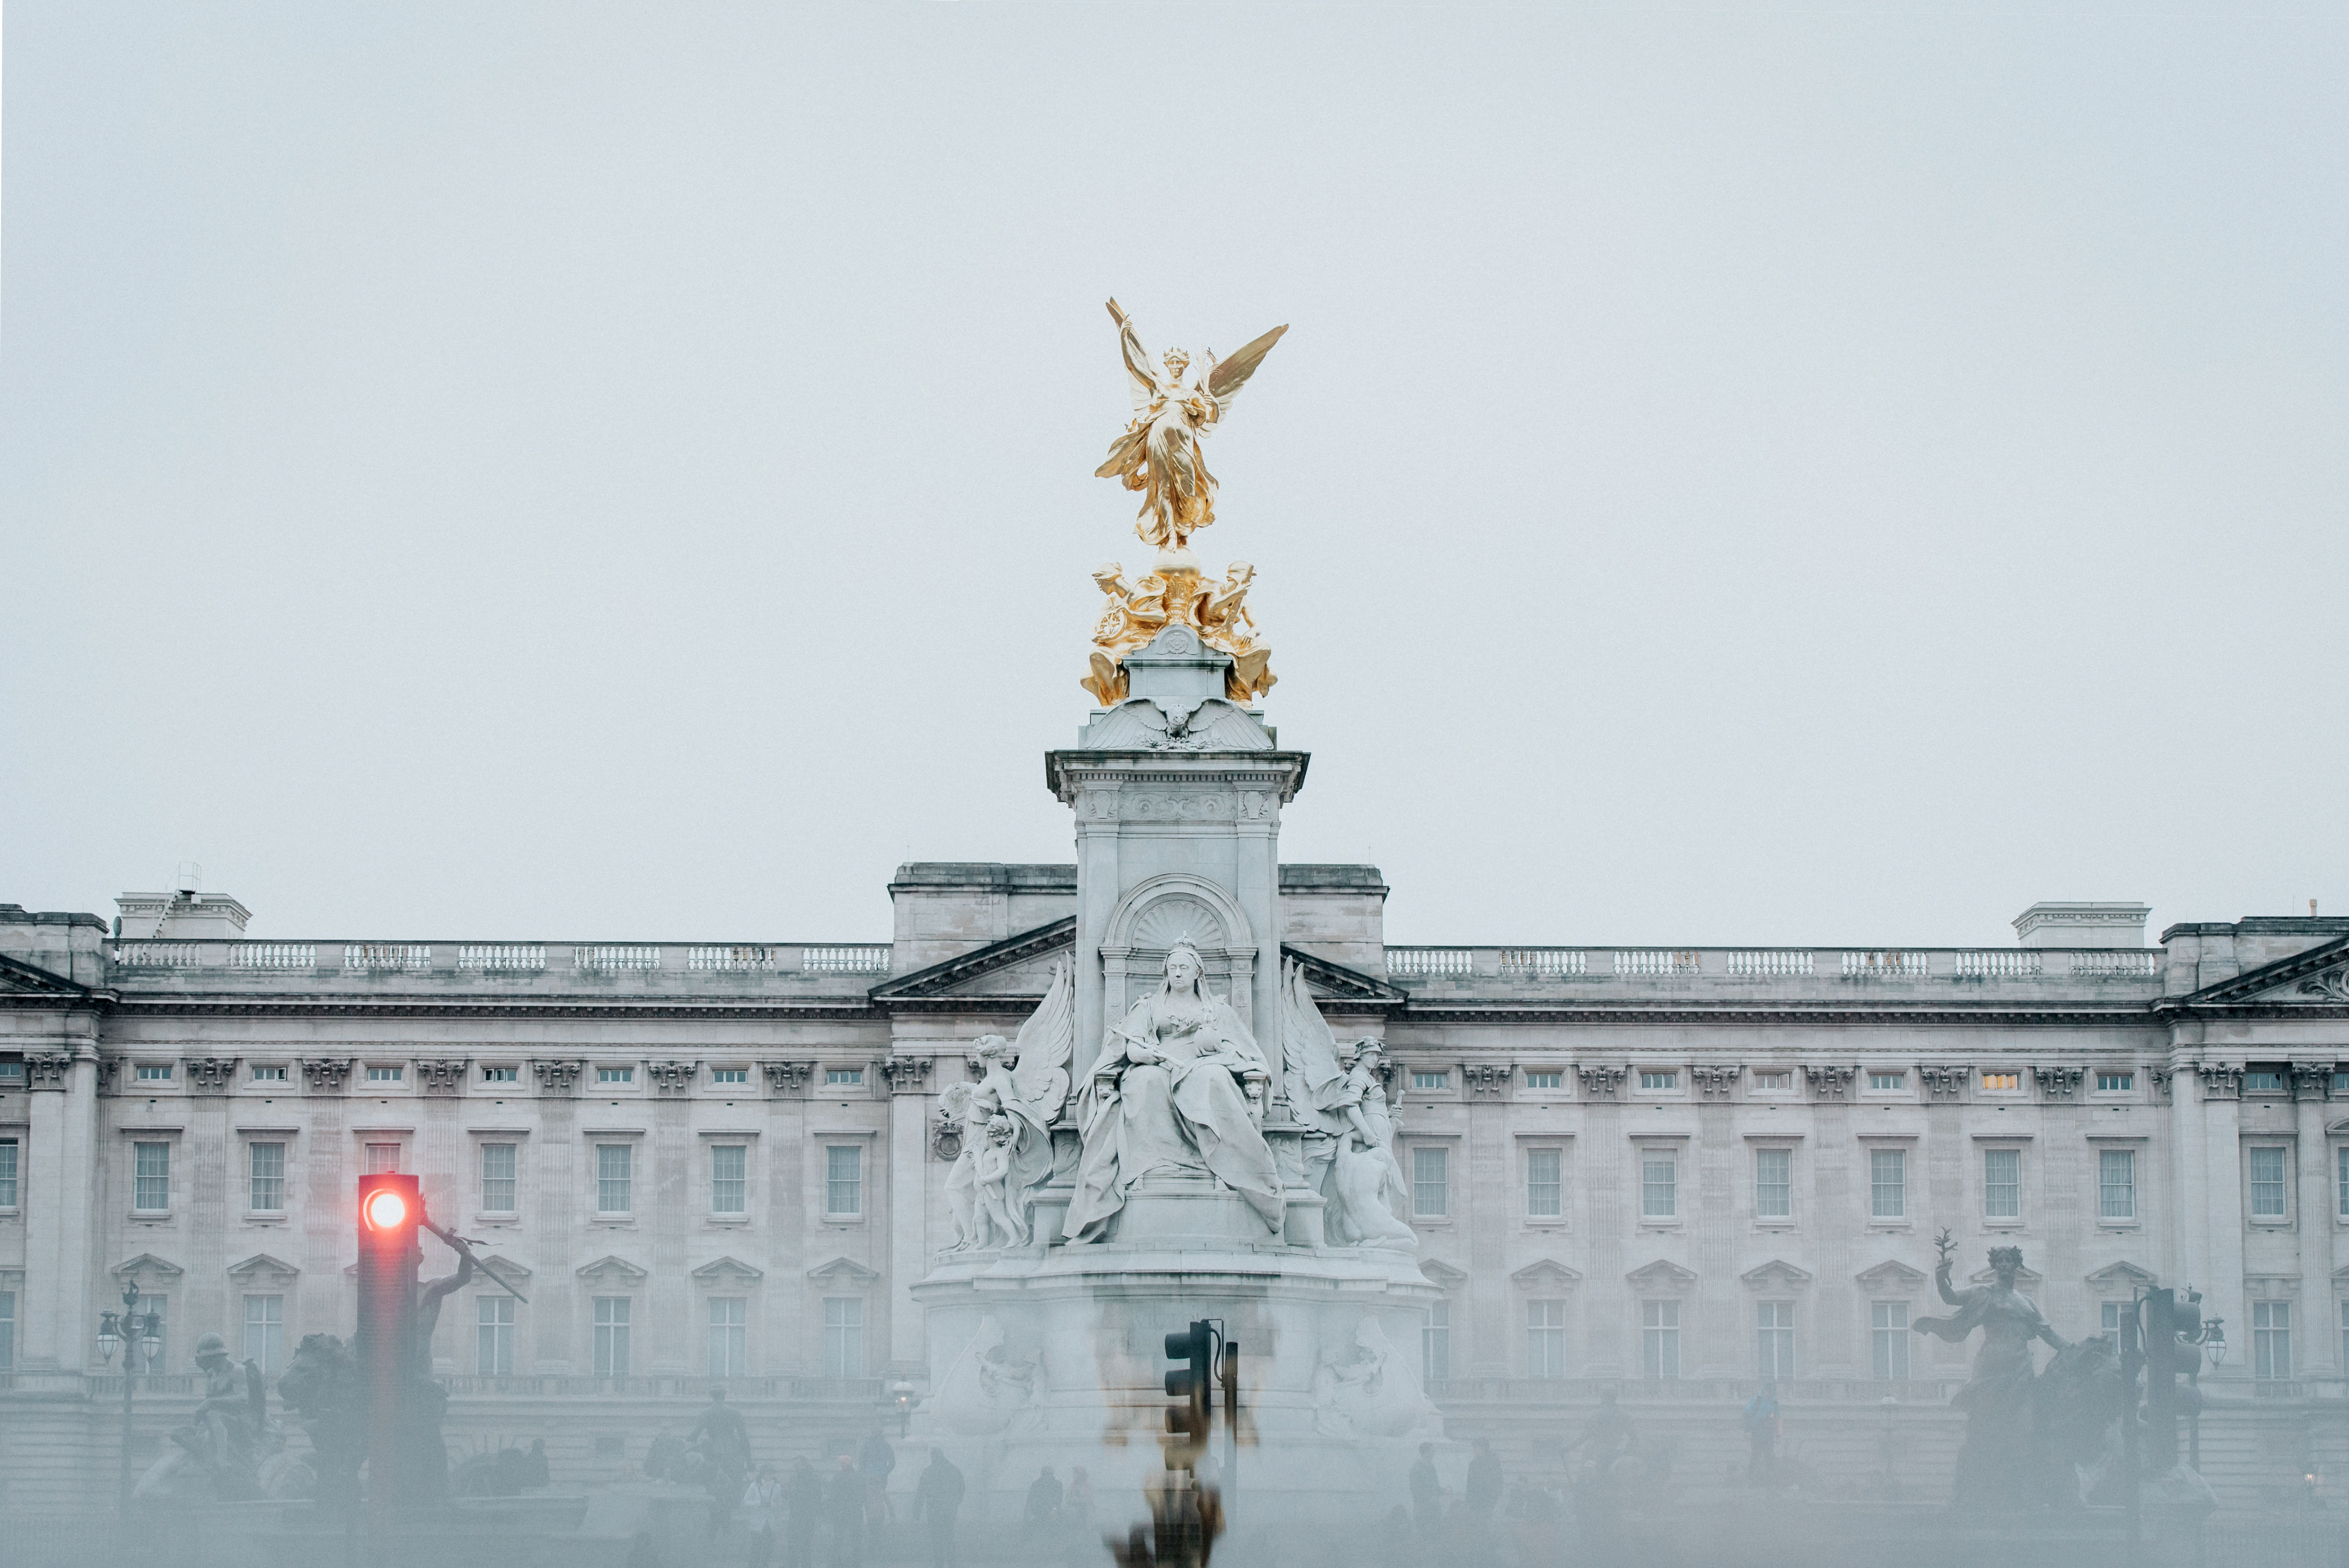 buckingham palace - Photo by Lea Fabienne on Unsplash